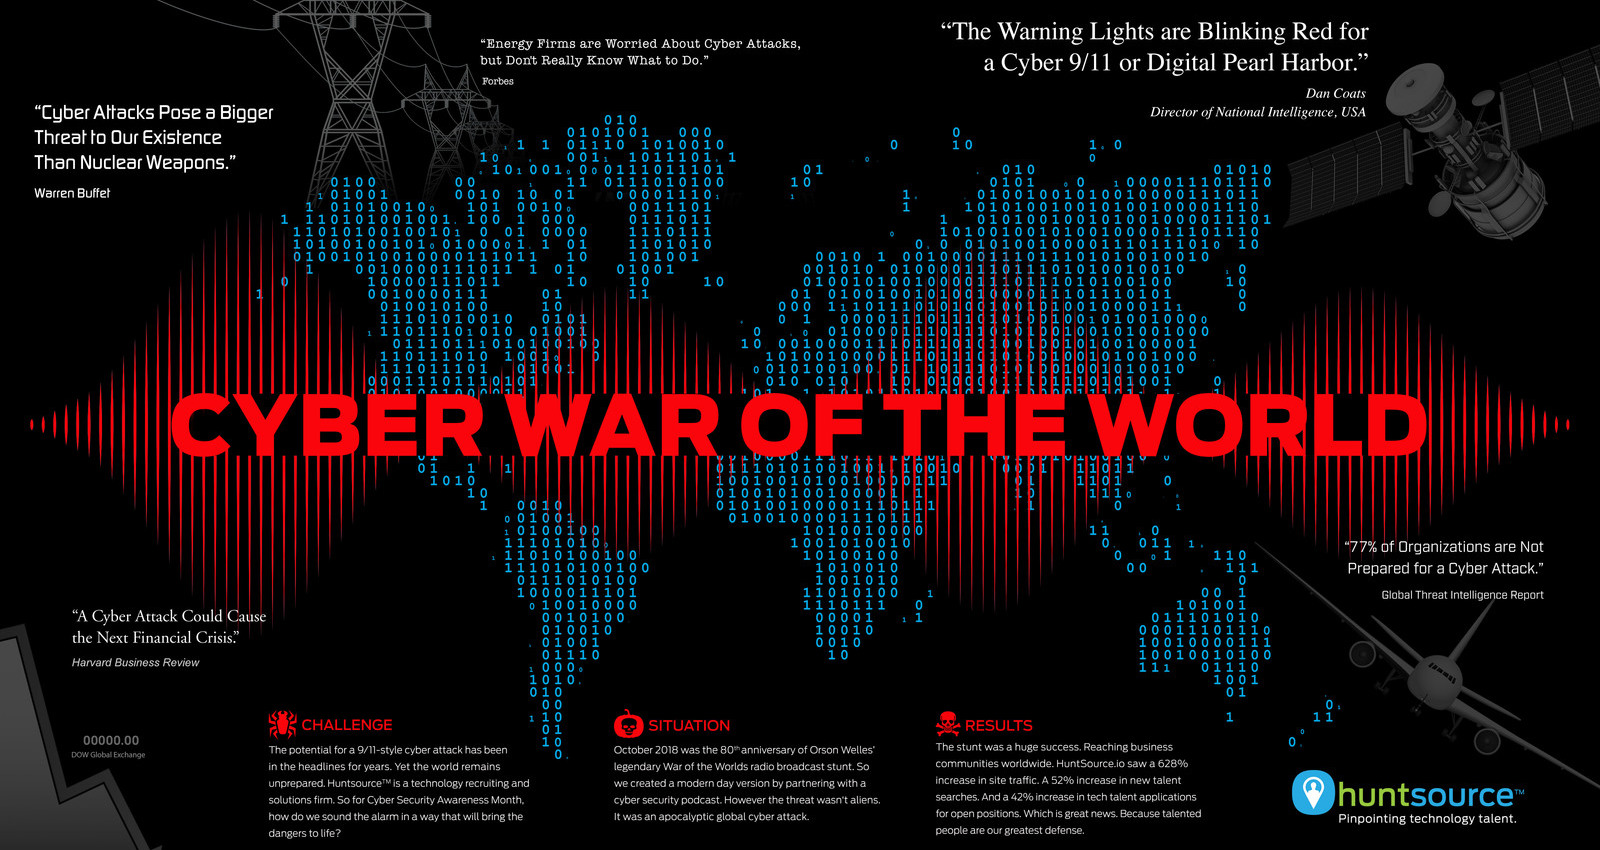 Cyber War of the World